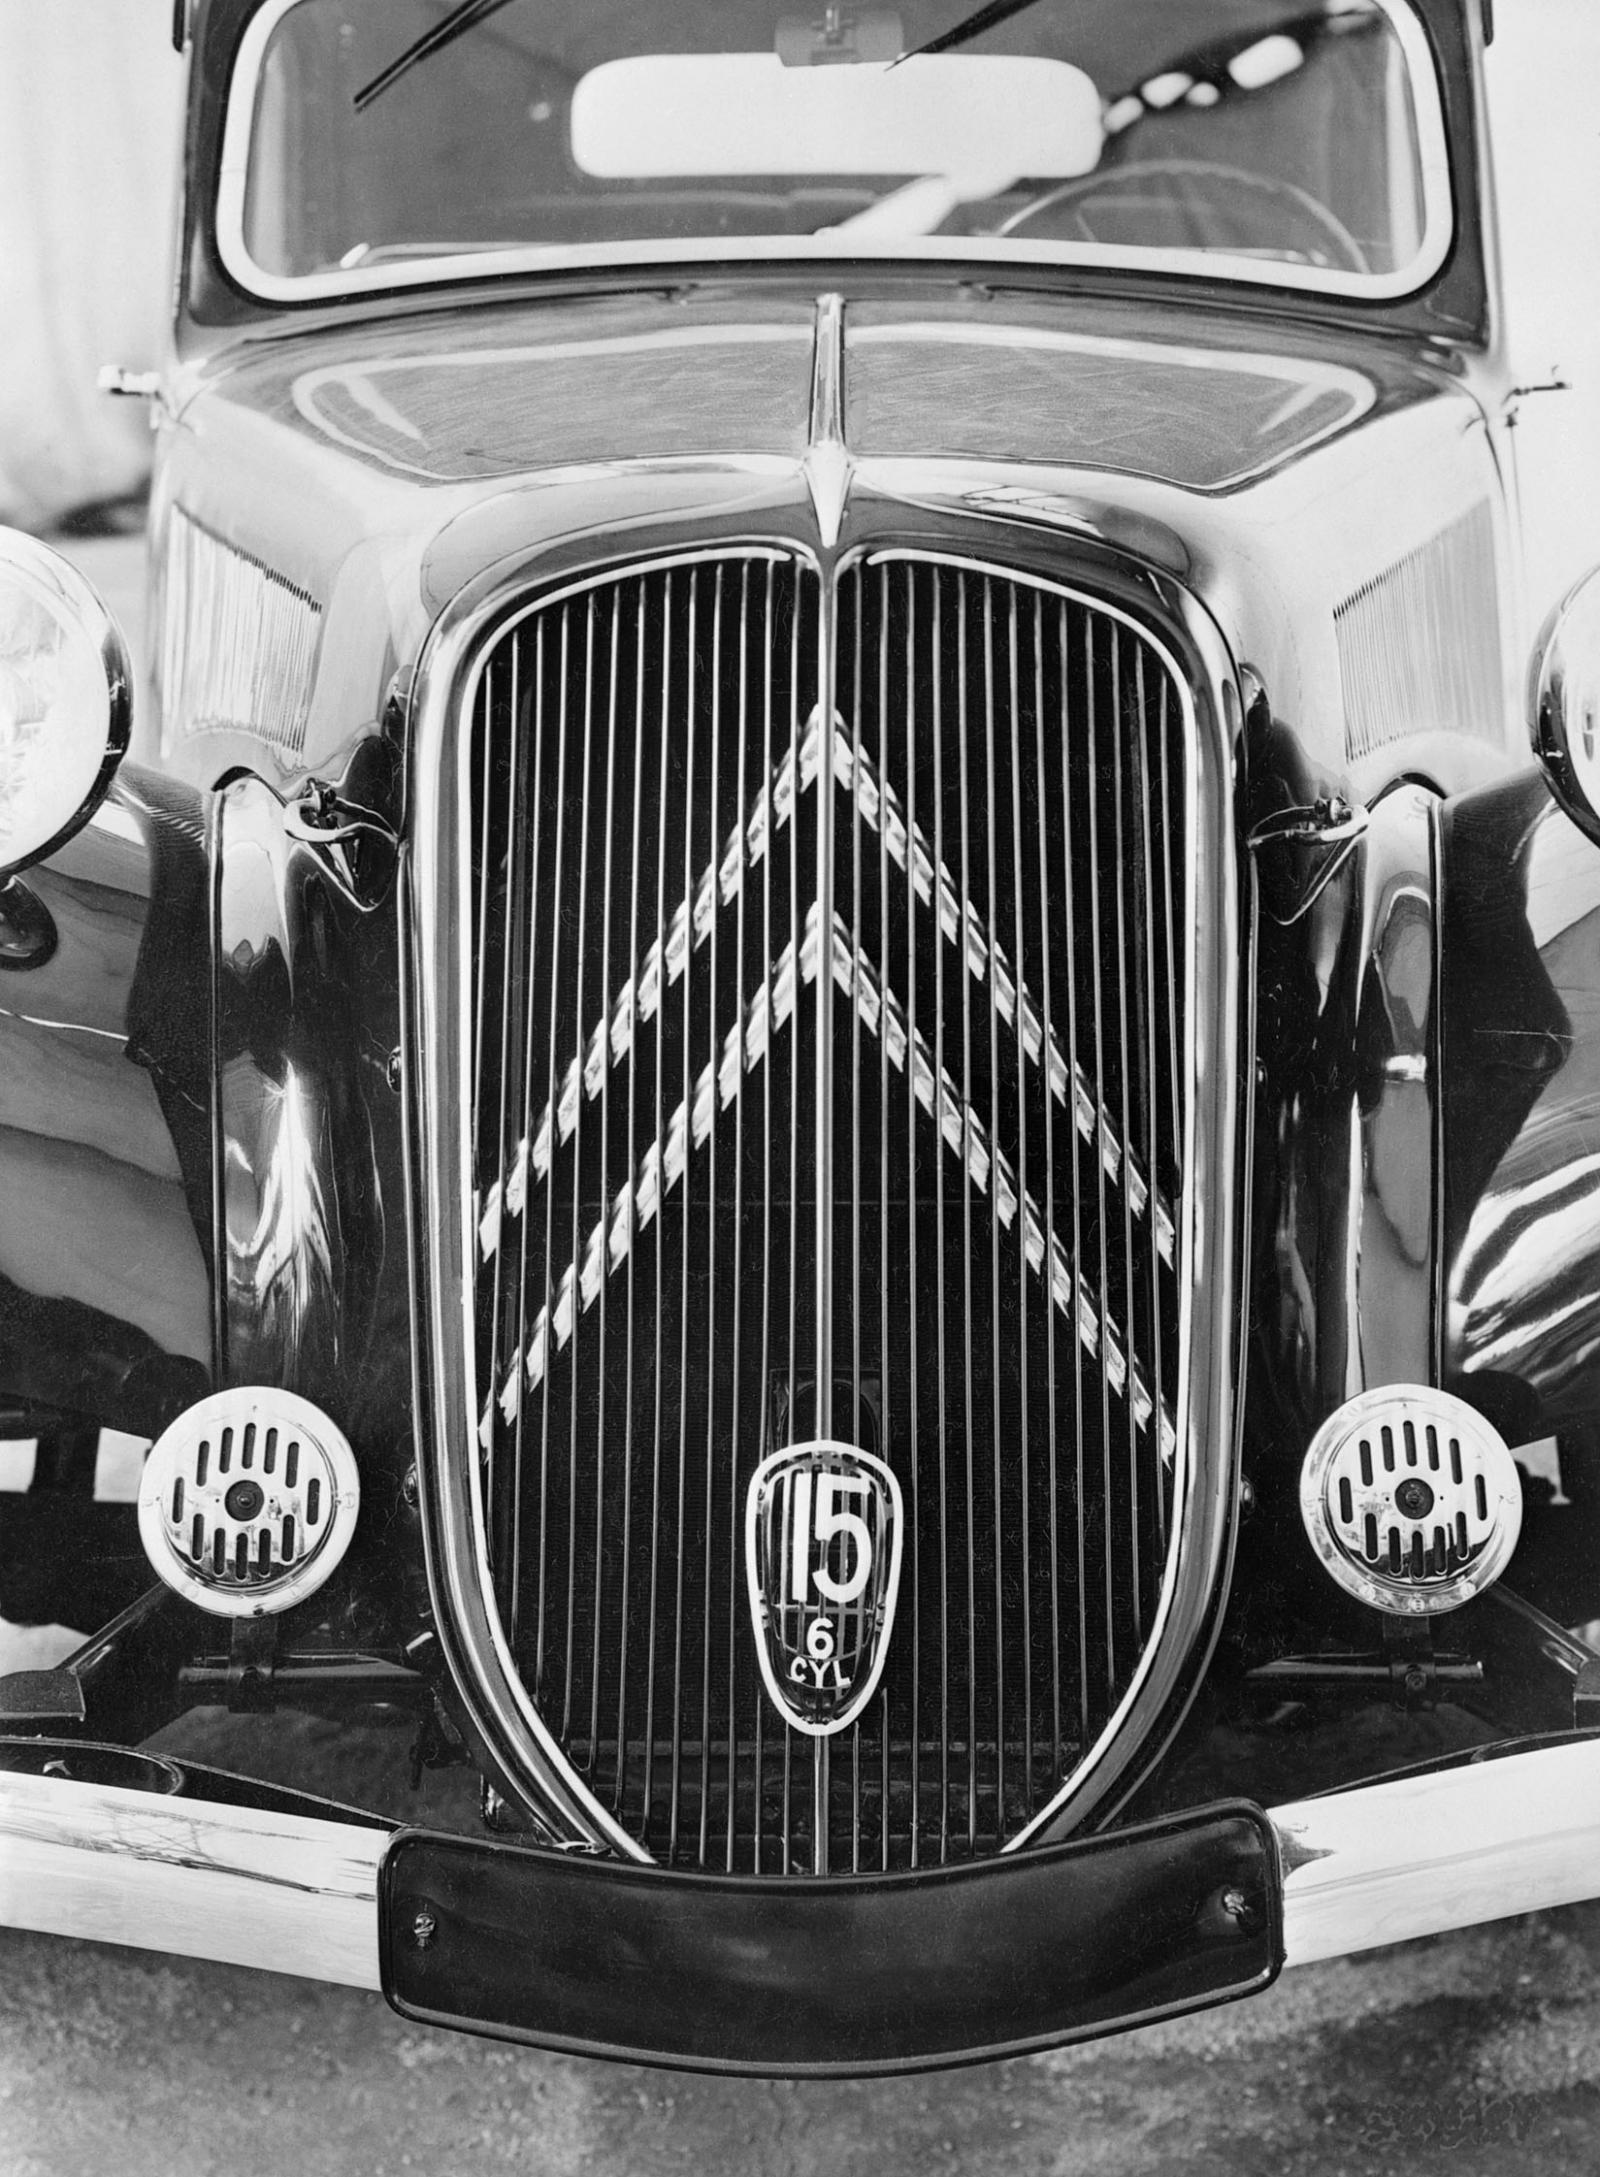 Traction 15 SIX 1938 calender